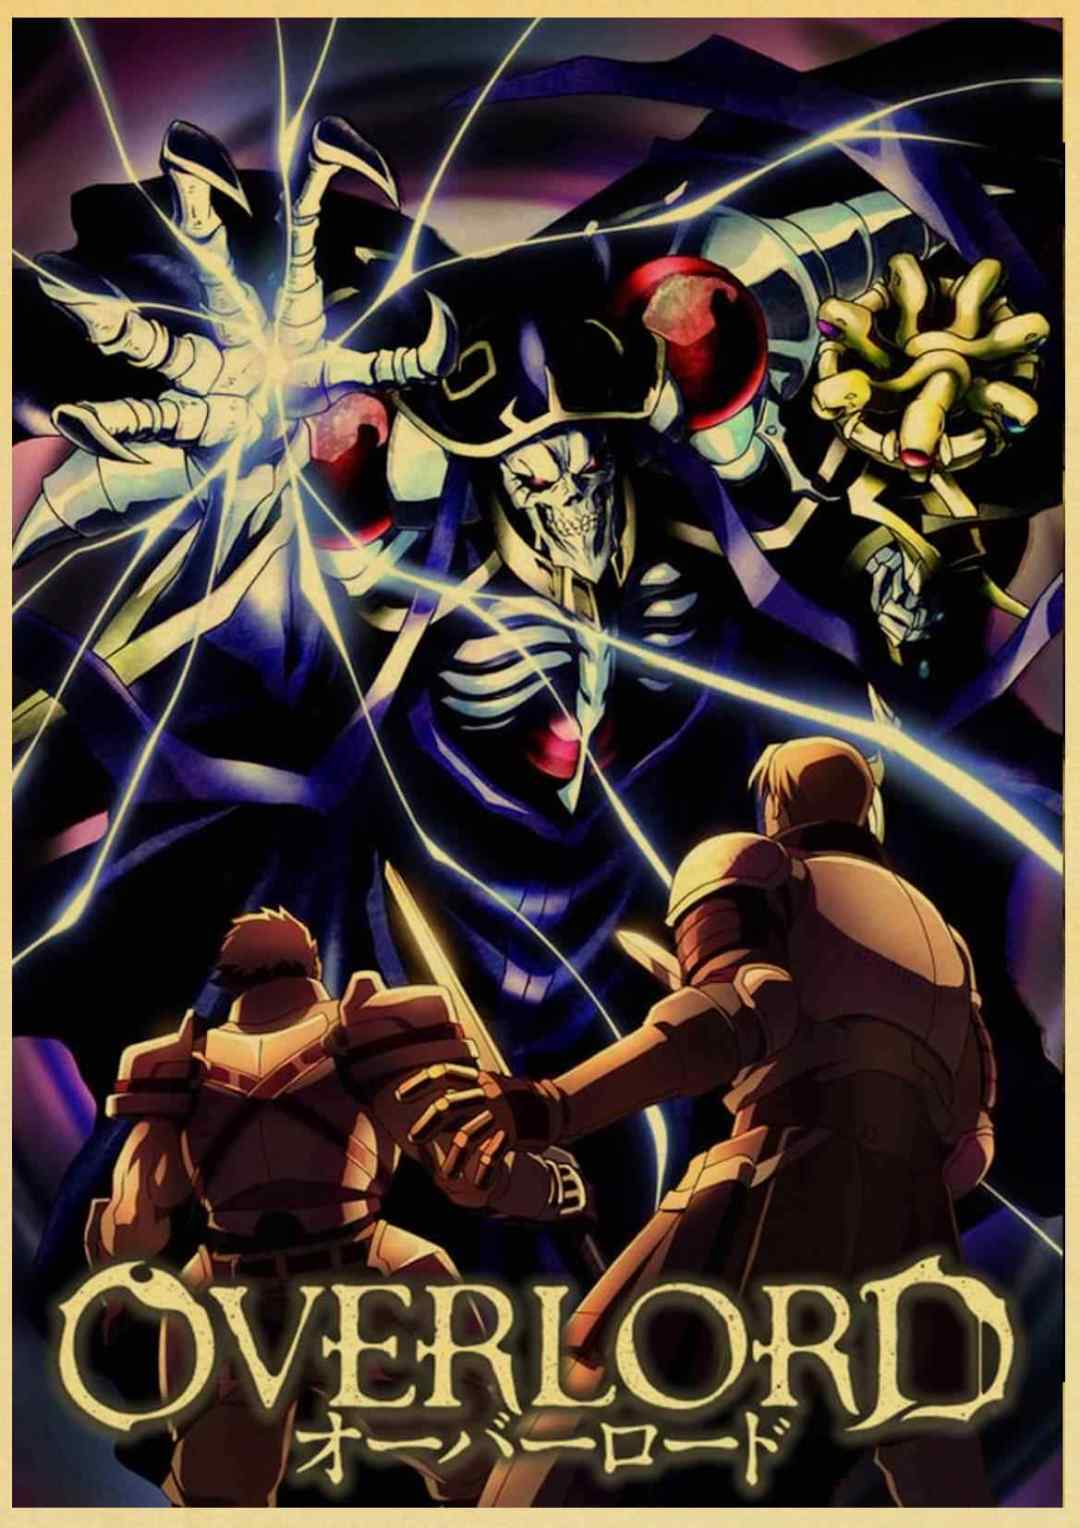 Janpnese-Anime-Overlord-retro-posters-kraft-wall-paper-High-Quality-Painting-For-Home-Decor-wall-stickers.jpg_q50.jpg